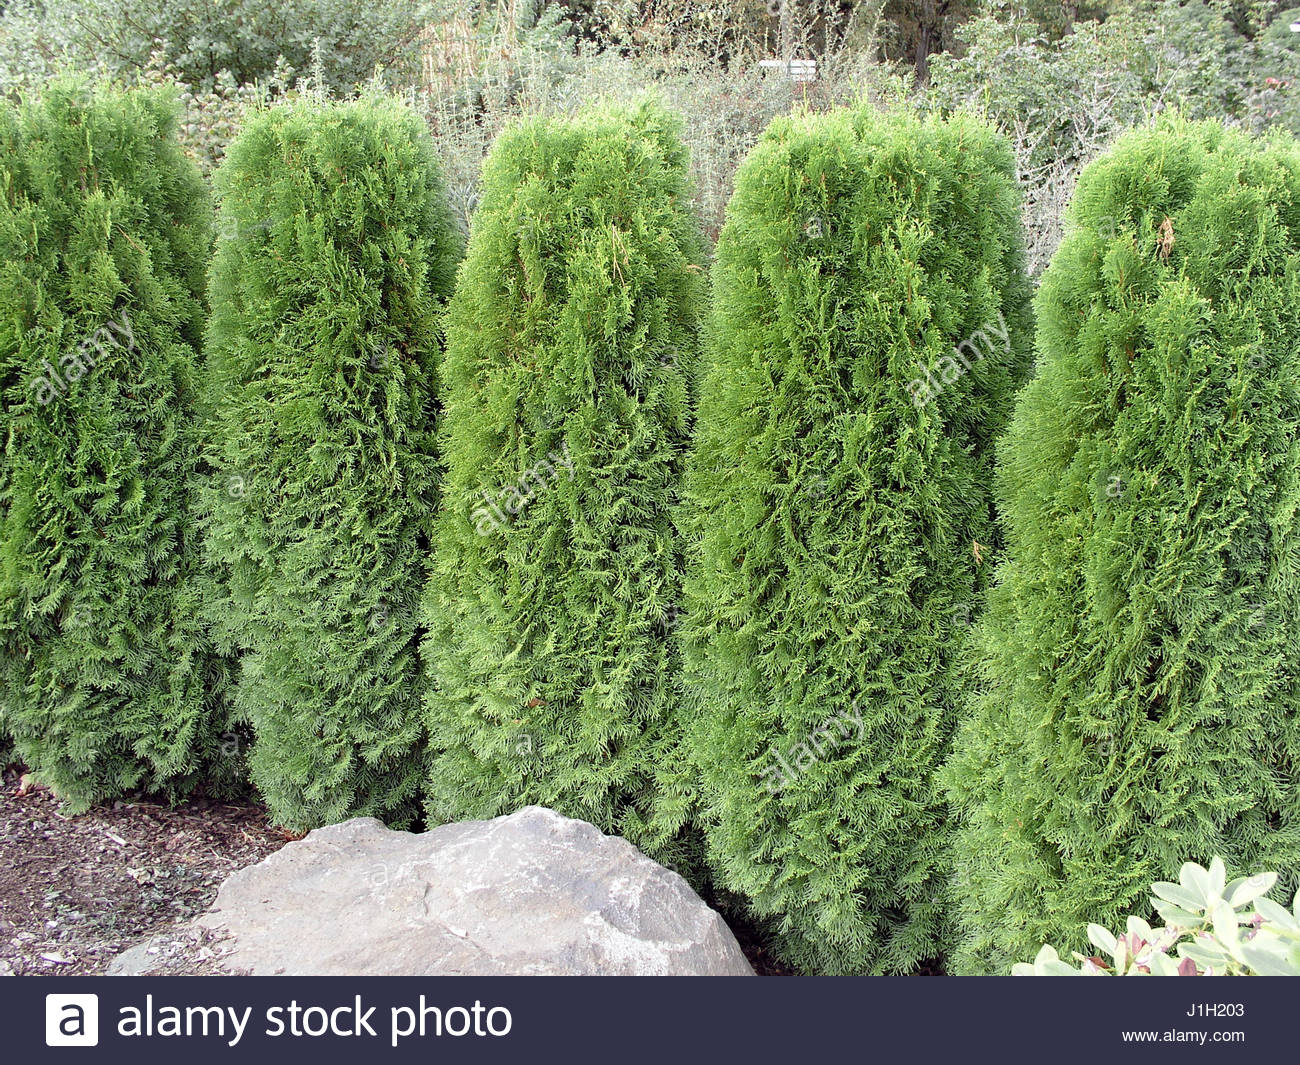 thuja occidentalis smaragd stock photos thuja occidentalis smaragd stock images alamy. Black Bedroom Furniture Sets. Home Design Ideas